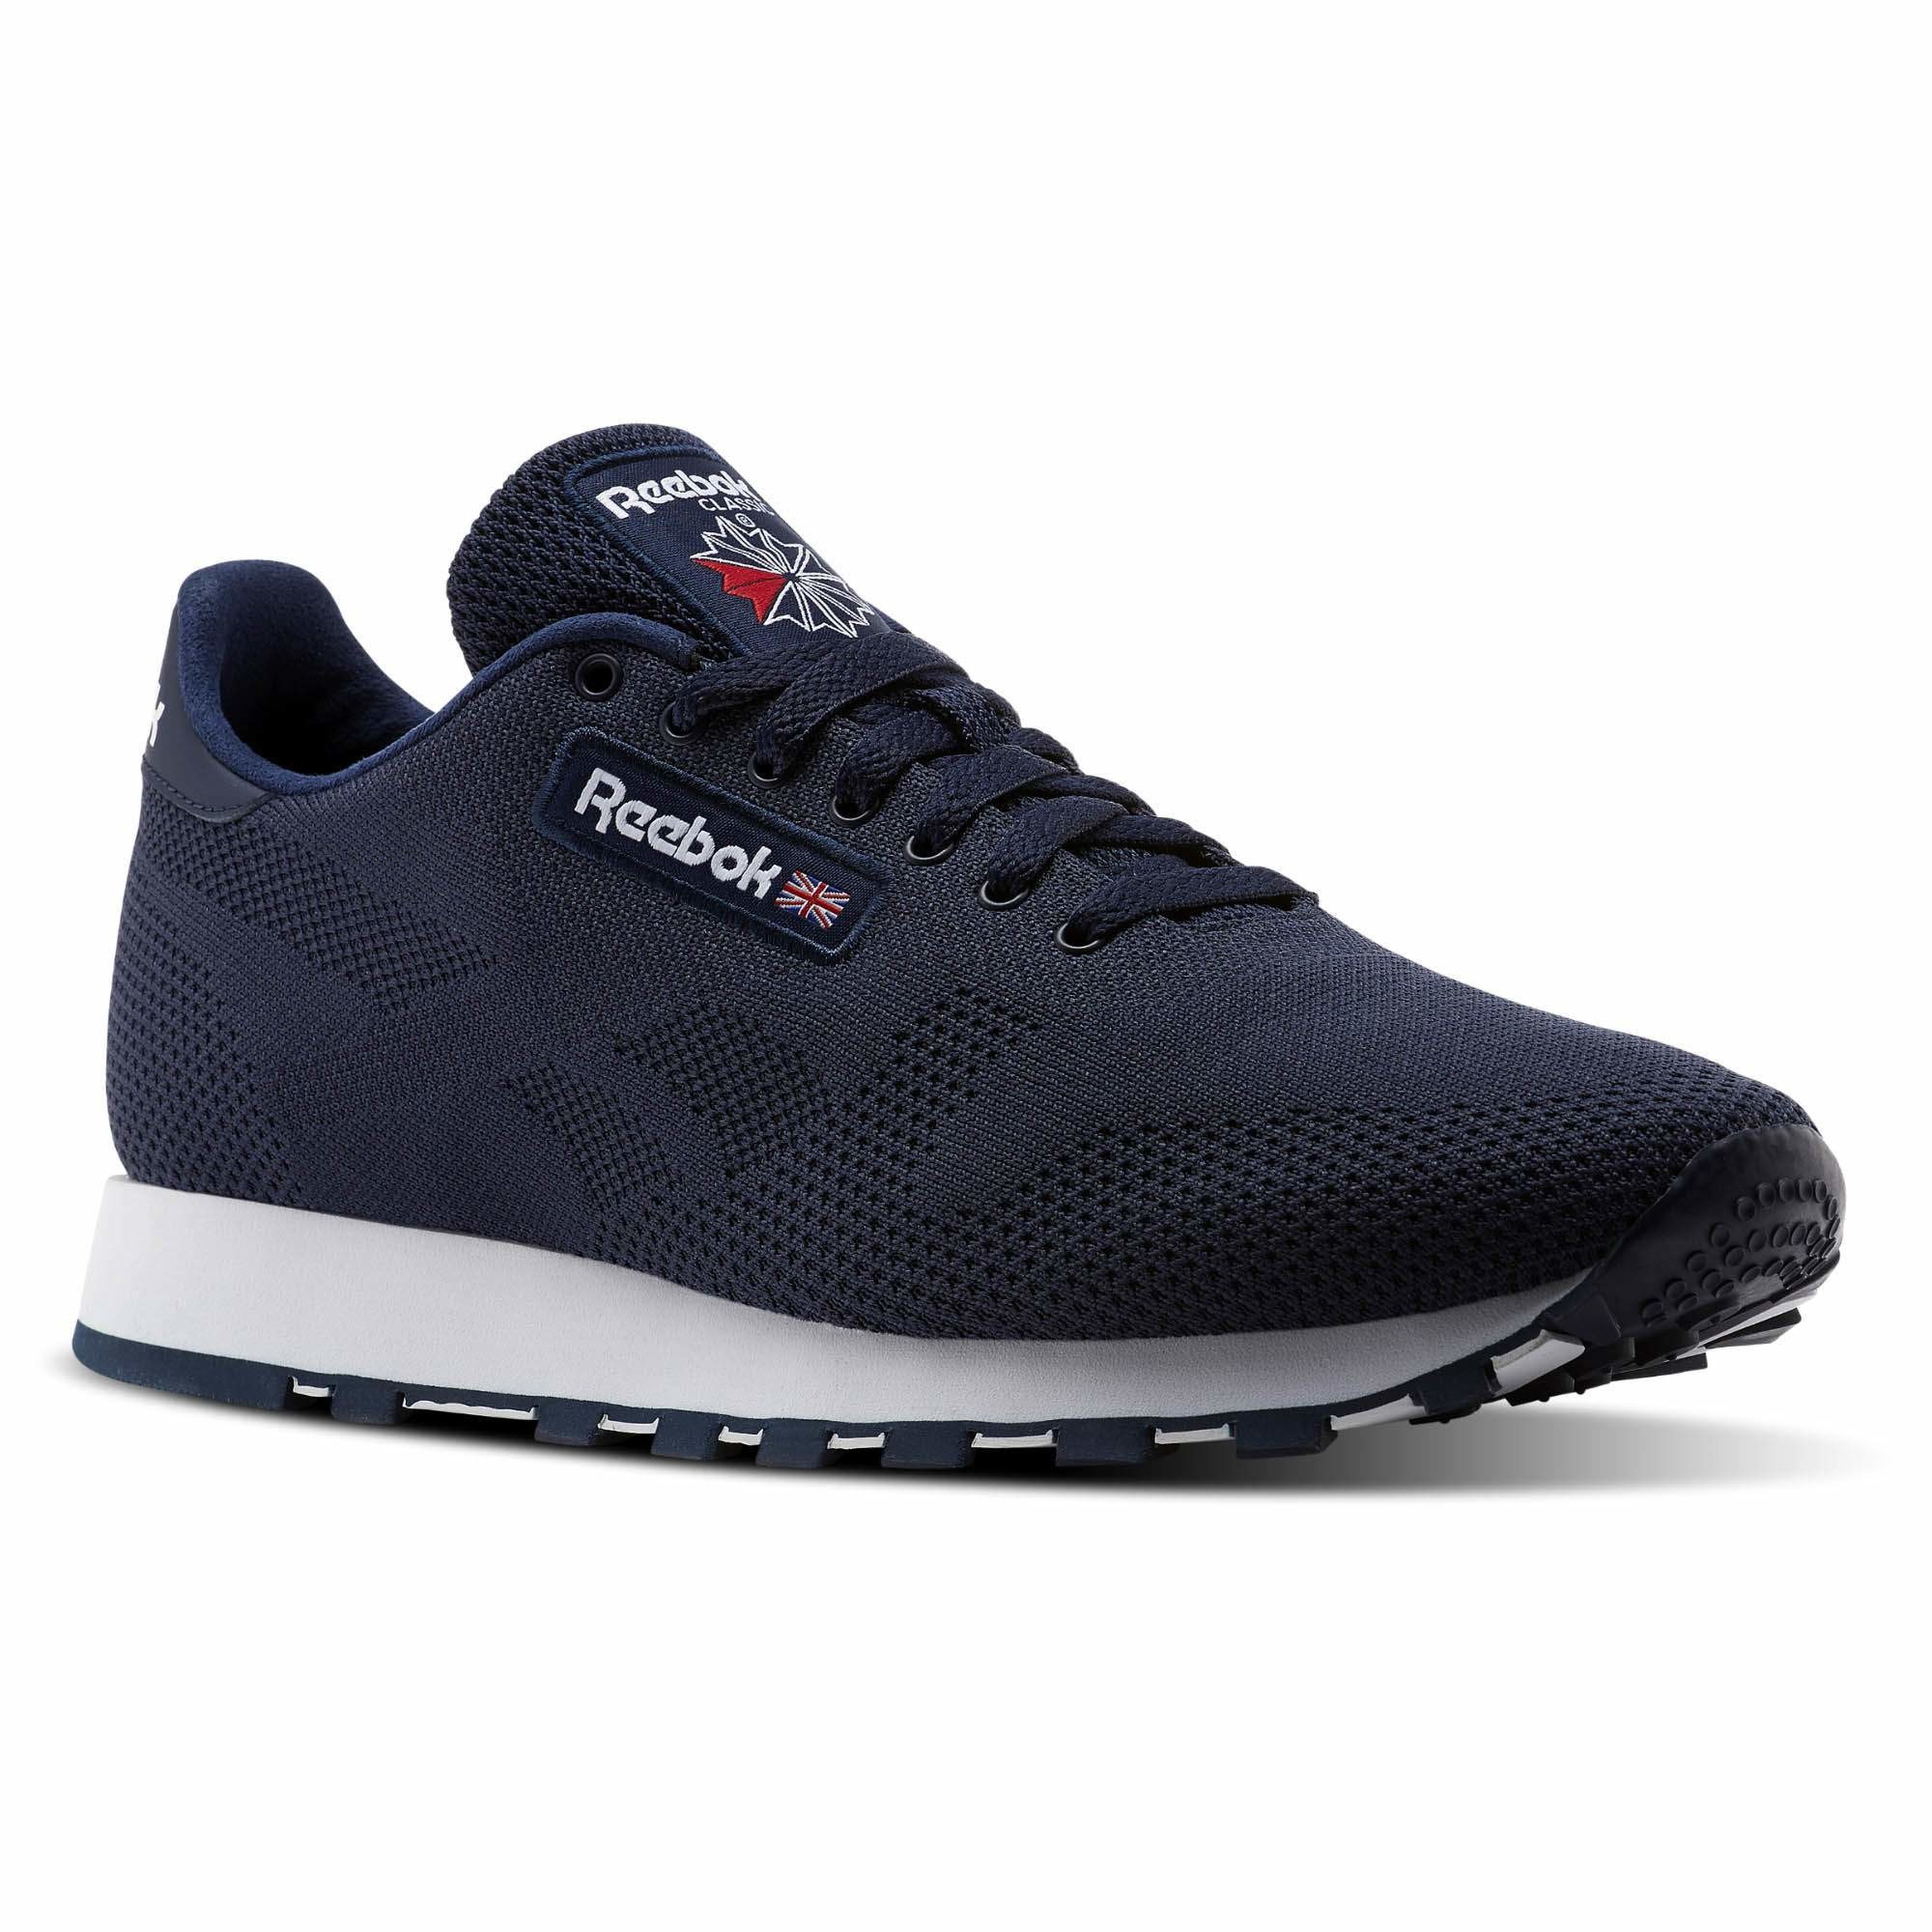 Reebok Classic Leather ULTK $34.99, Women's Classic Leather Patent $34.99 & More + Free S/H